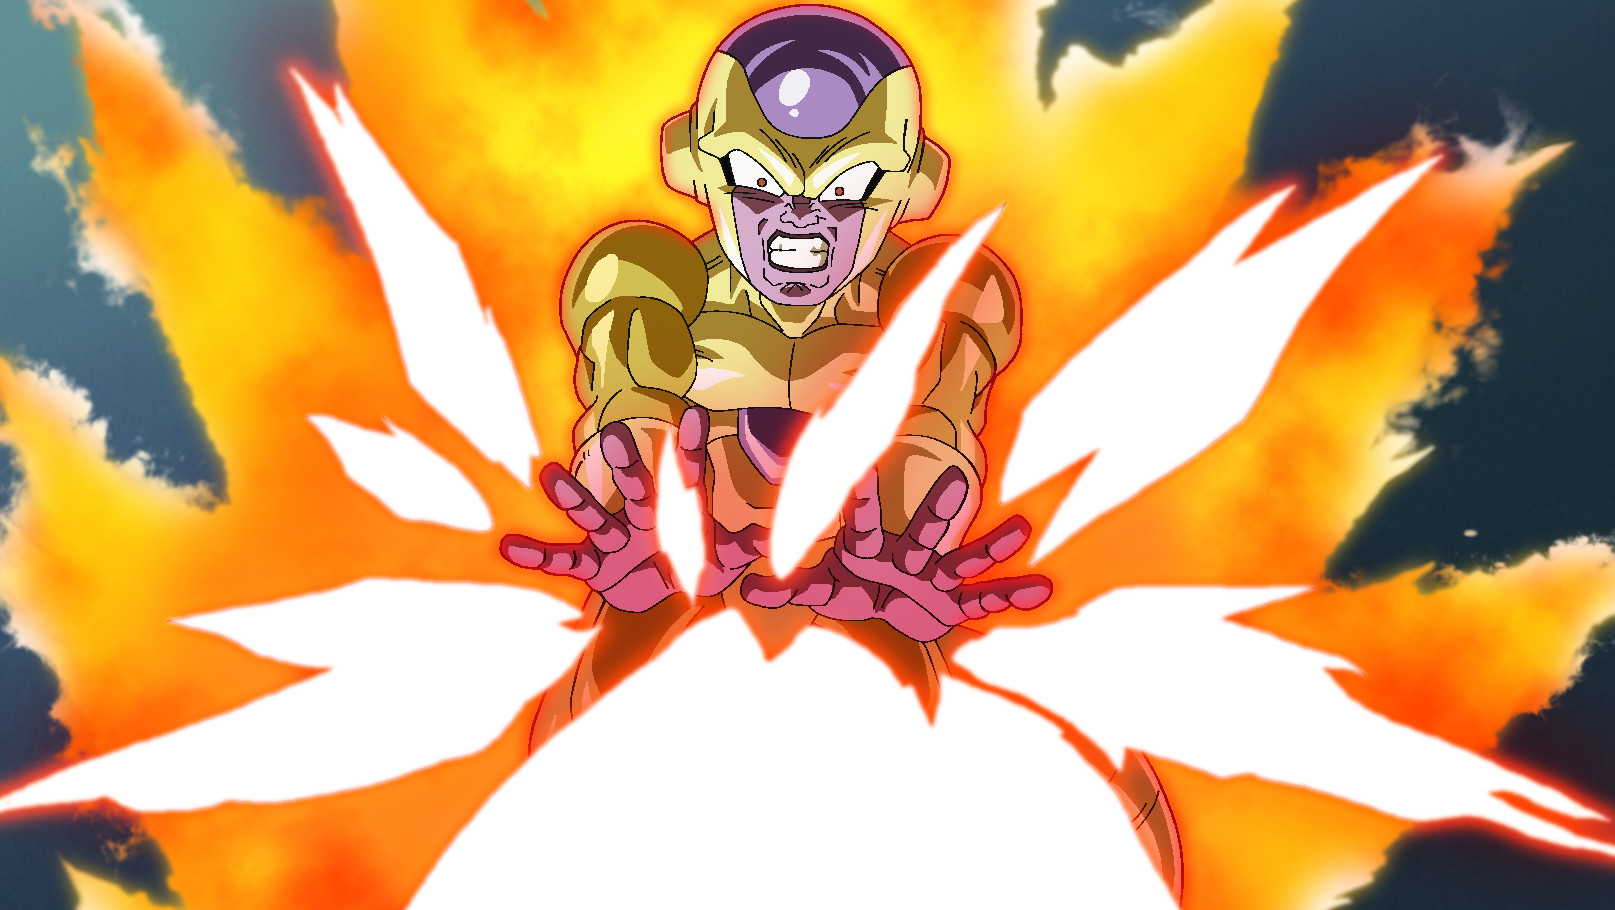 Episode 25: An All-Out Battle! The Revenge of Golden Frieza